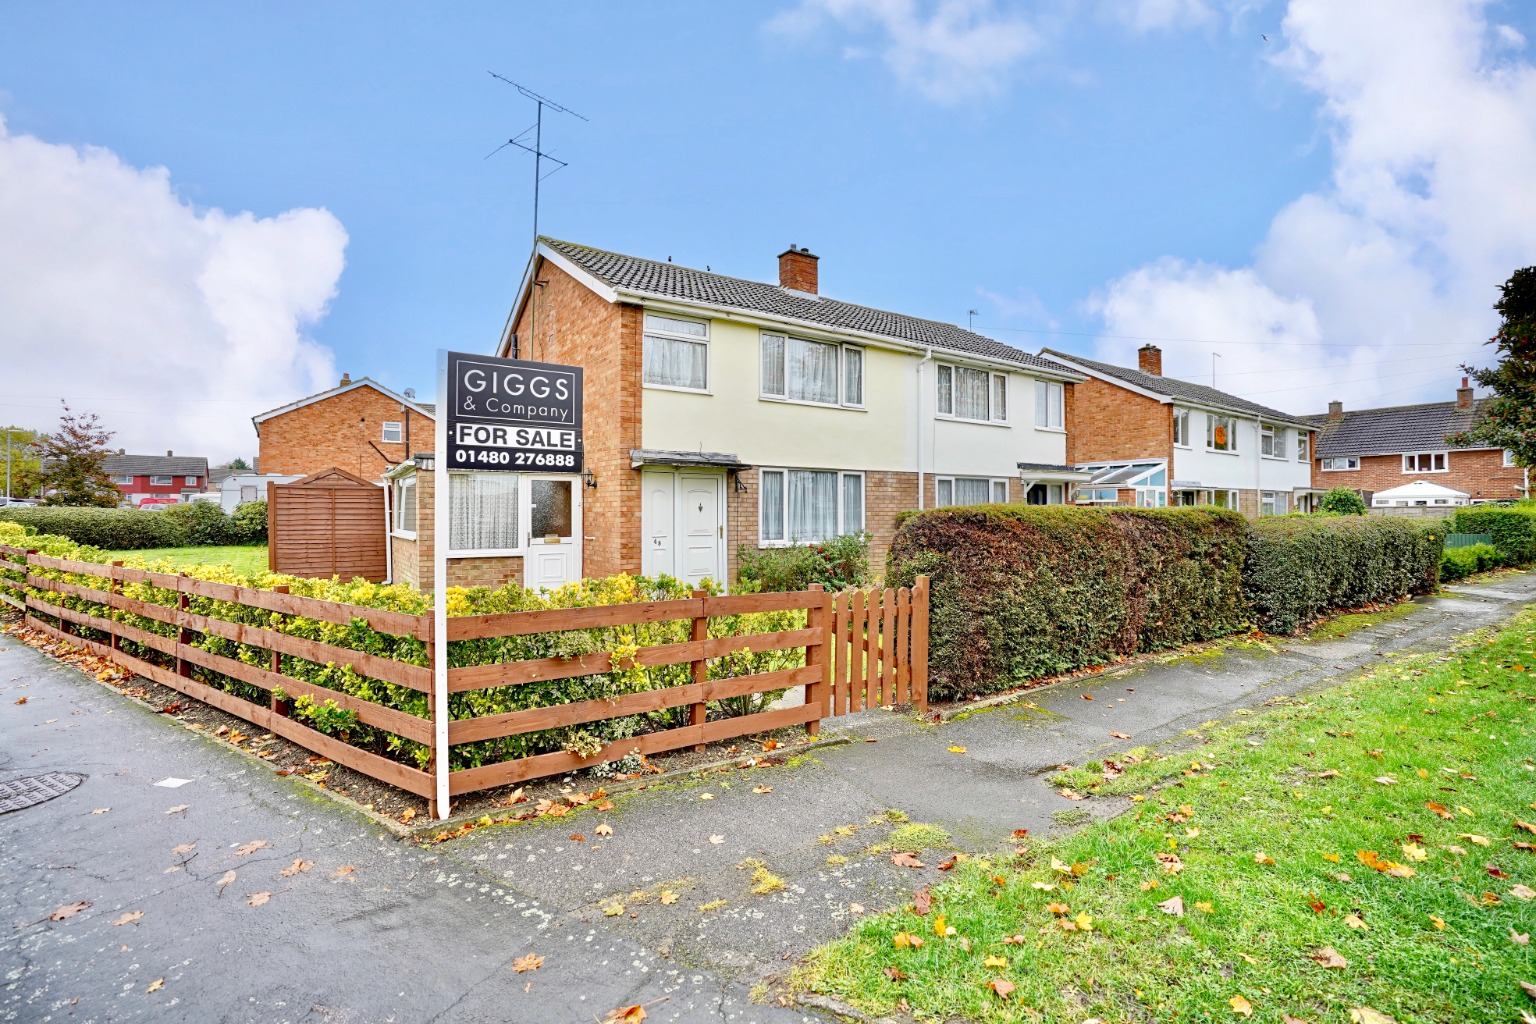 3 bed  for sale in Princes Drive, St. Neots, PE19